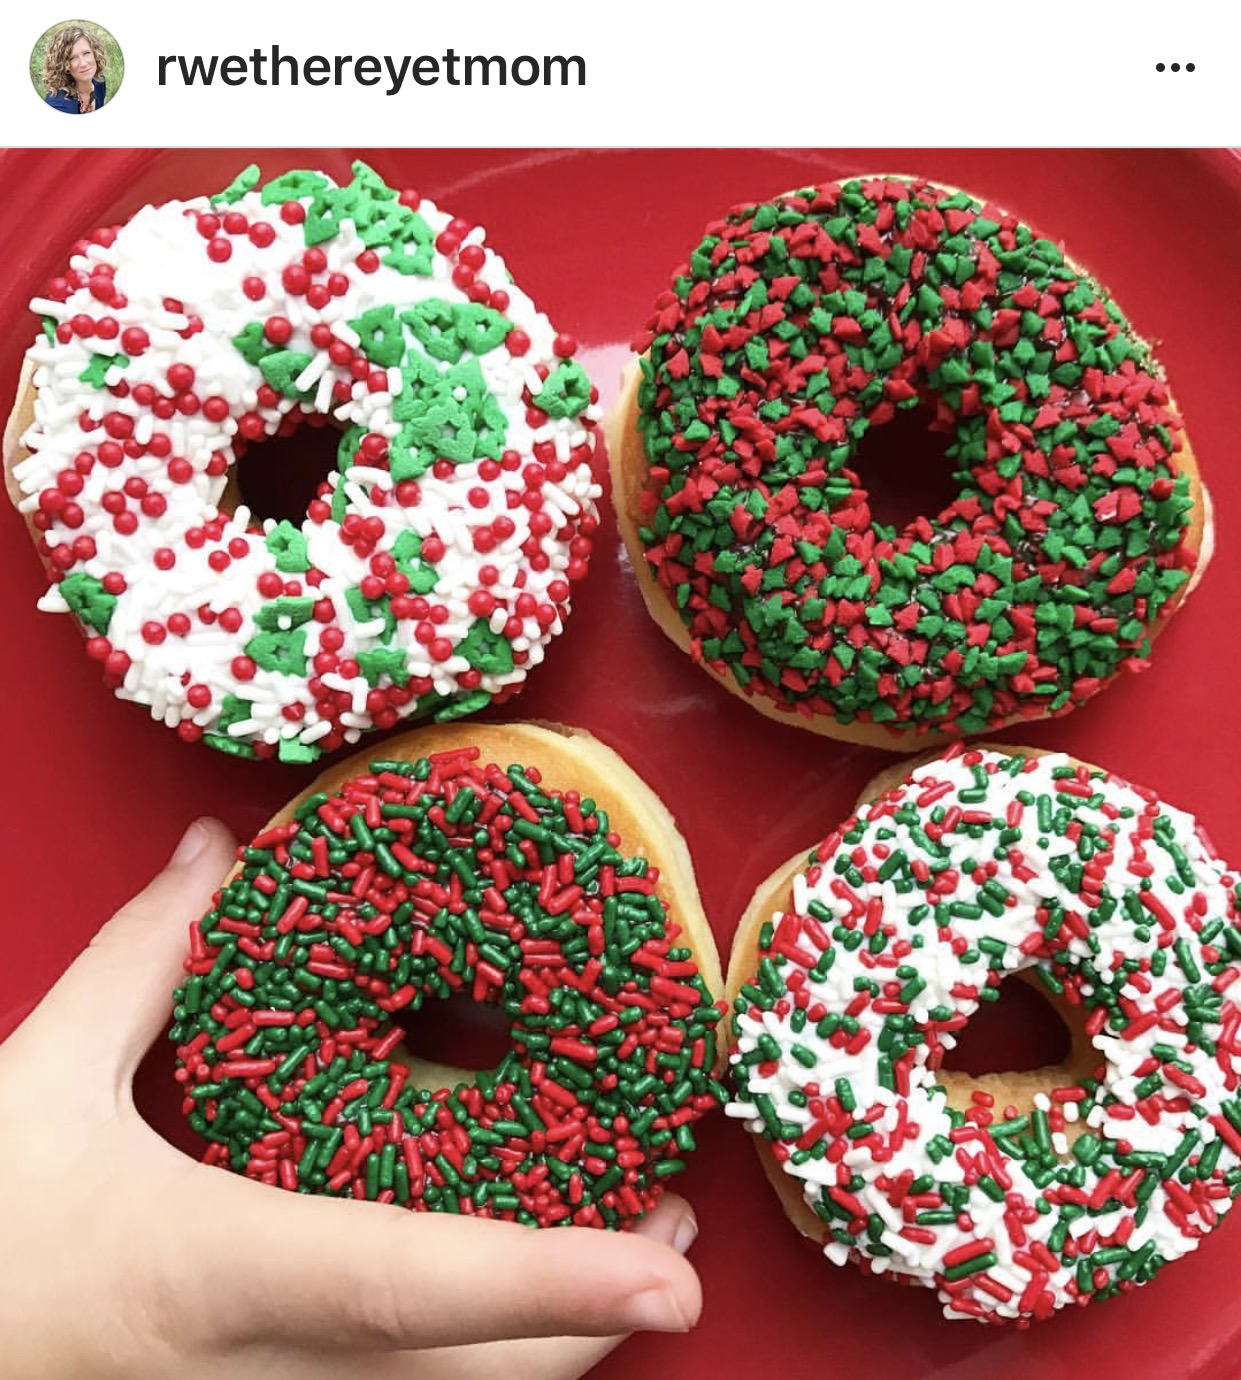 Top 7 Donut Shops in Round Rock